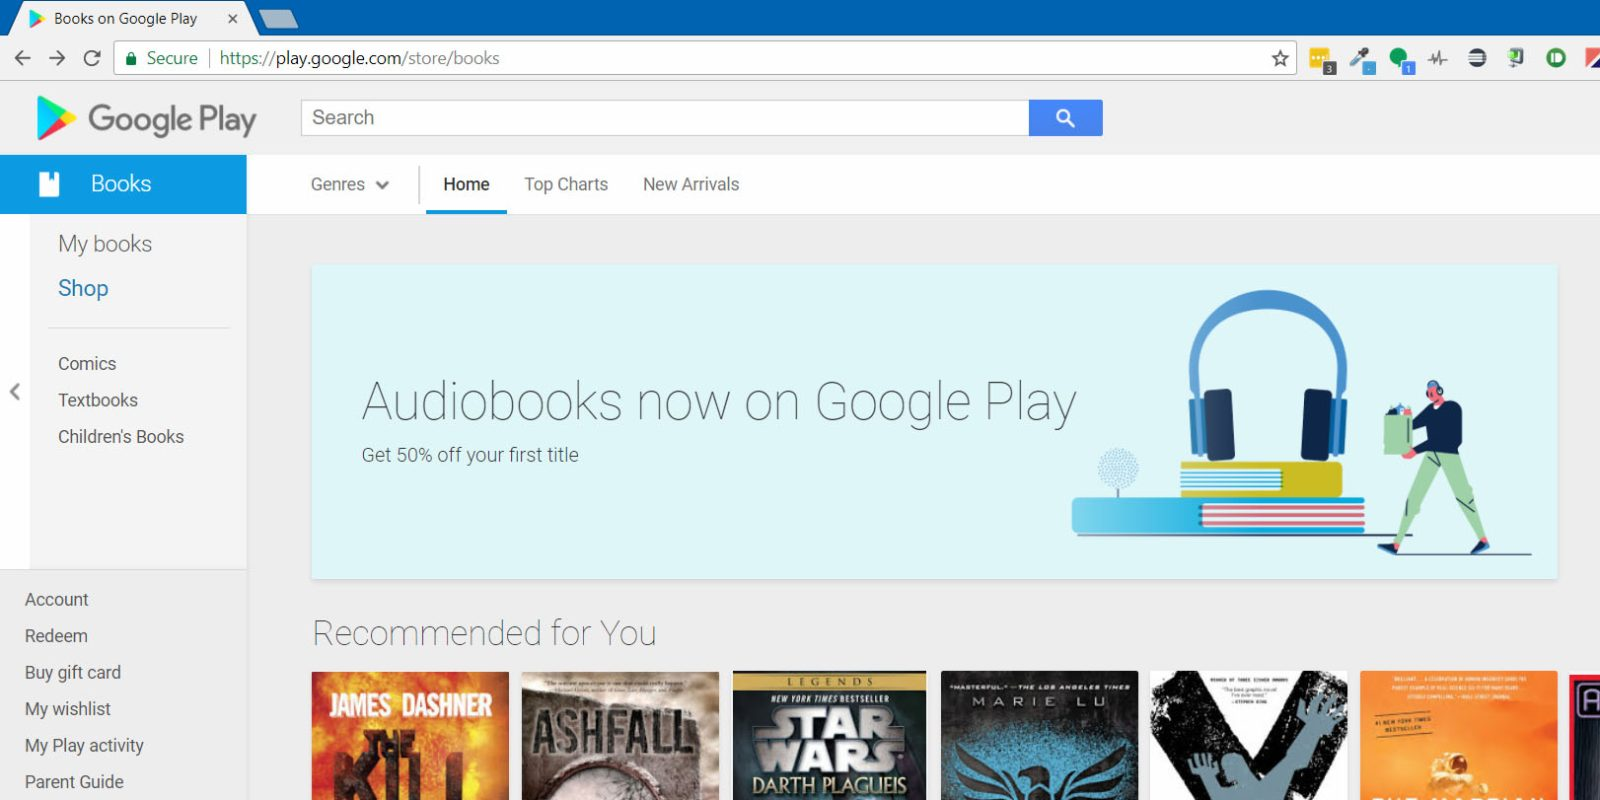 google play teases audiobook sales ahead of official arrival will